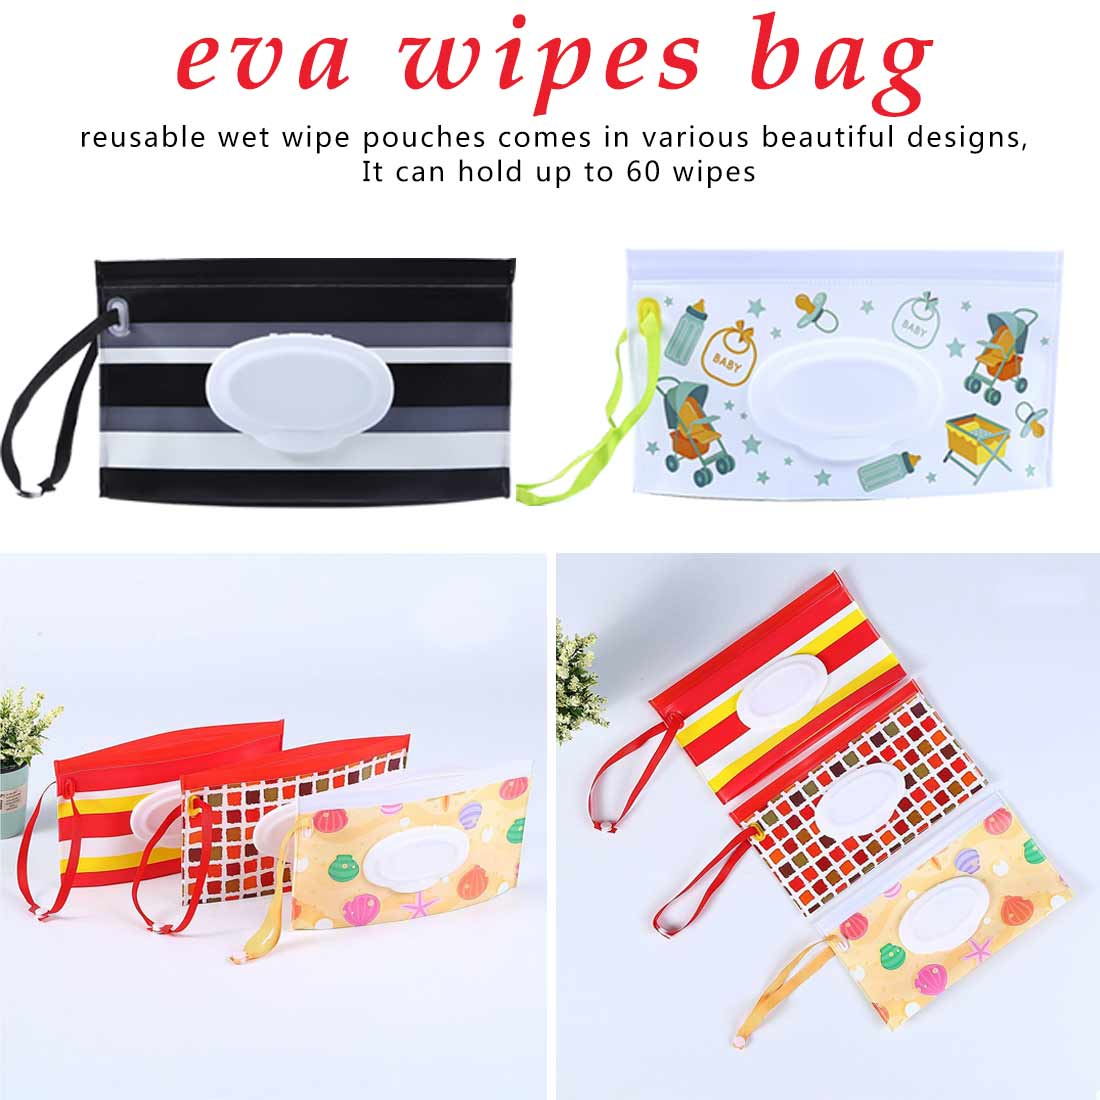 Portable Reusable Refillable Wet Wipes Bag Clamshell Cosmetic Pouch Clutch And Clean Easy-carry Wipes Container Tissue Boxes